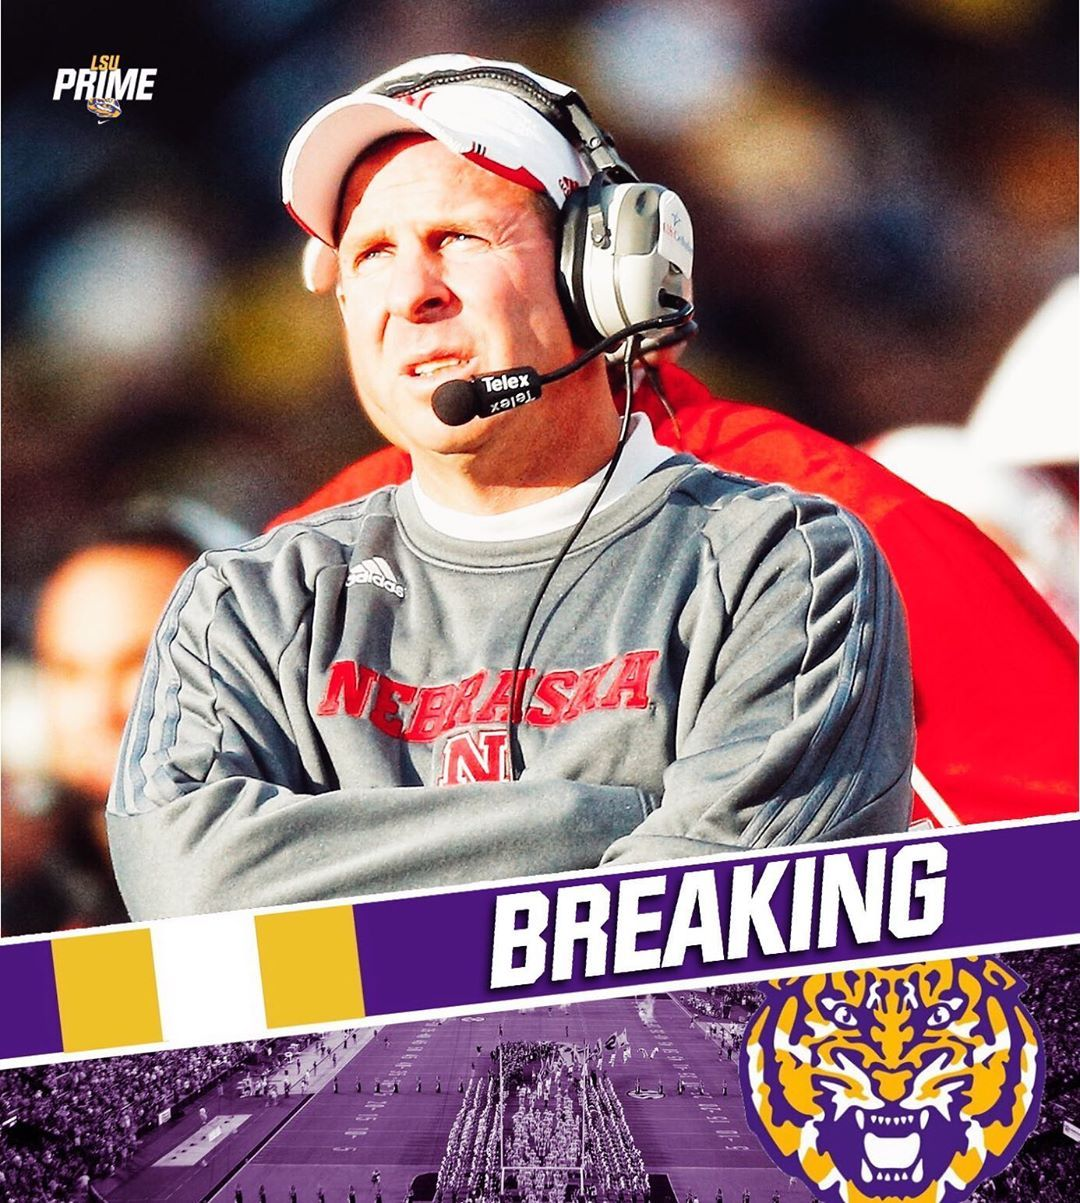 Lsu News 4 1k On Instagram Breaking It Has Been Reported That Lsu Hc Ed Orgeron Has Offered Bo Pelini The Defensive In 2020 Lsu Baseball Cards Football